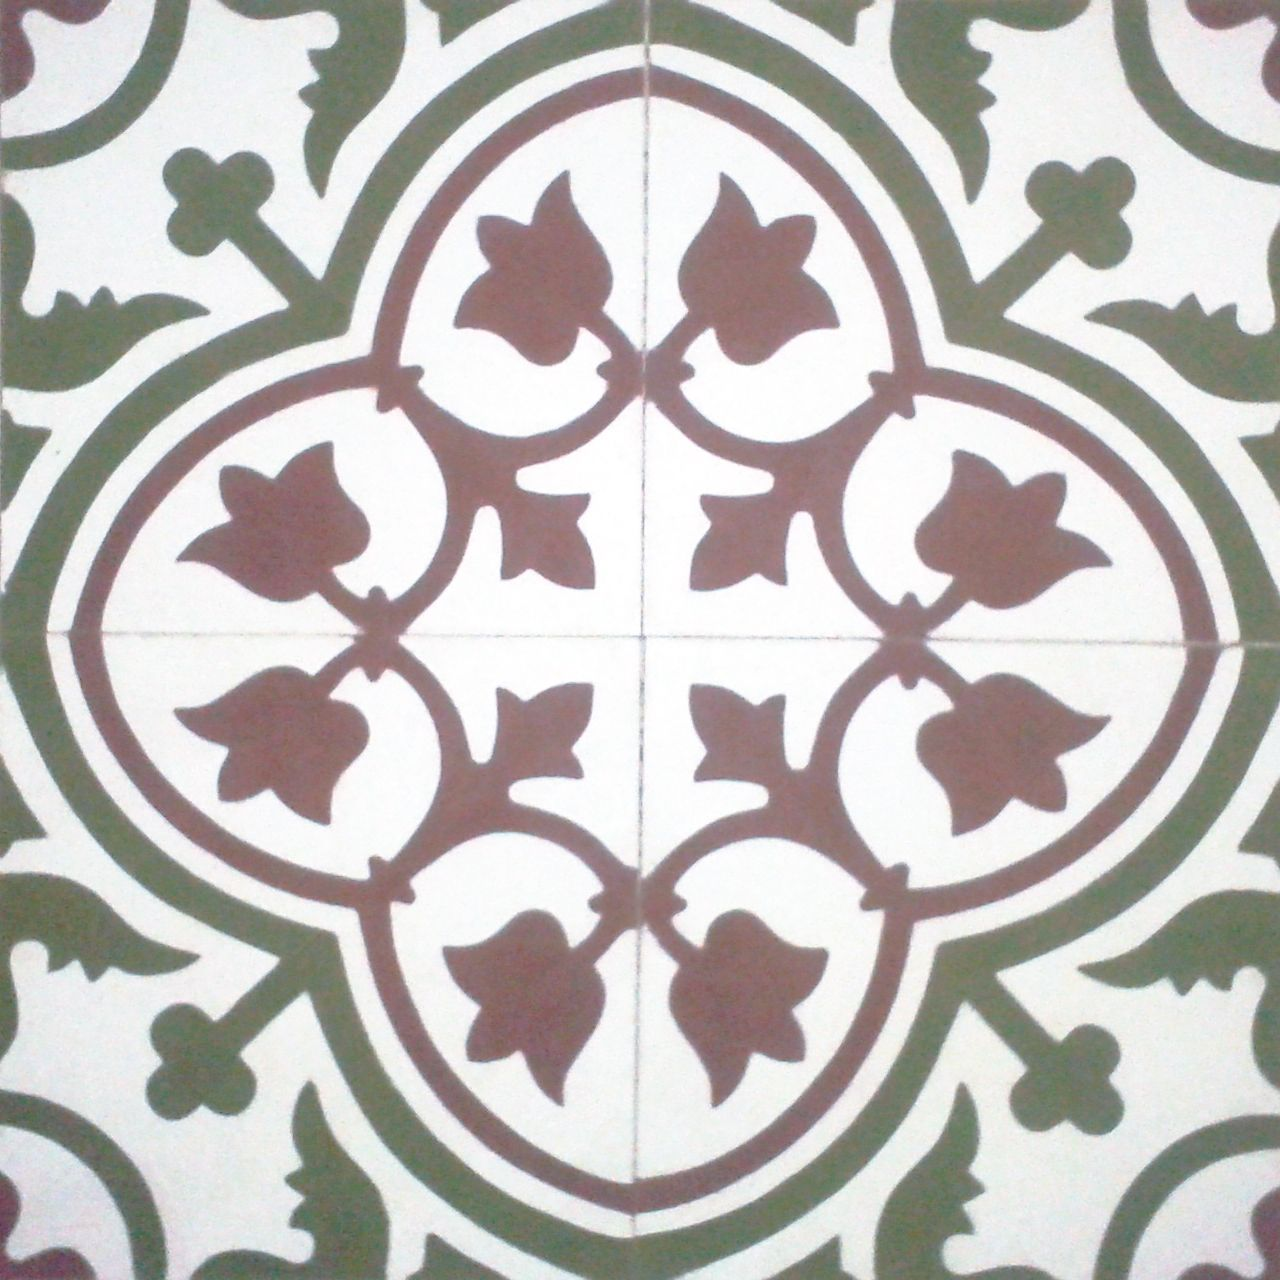 Floral spanish design hydraulic authentic andalusian tiles for floral spanish design hydraulic authentic andalusian tiles for both the floor and wall dailygadgetfo Image collections